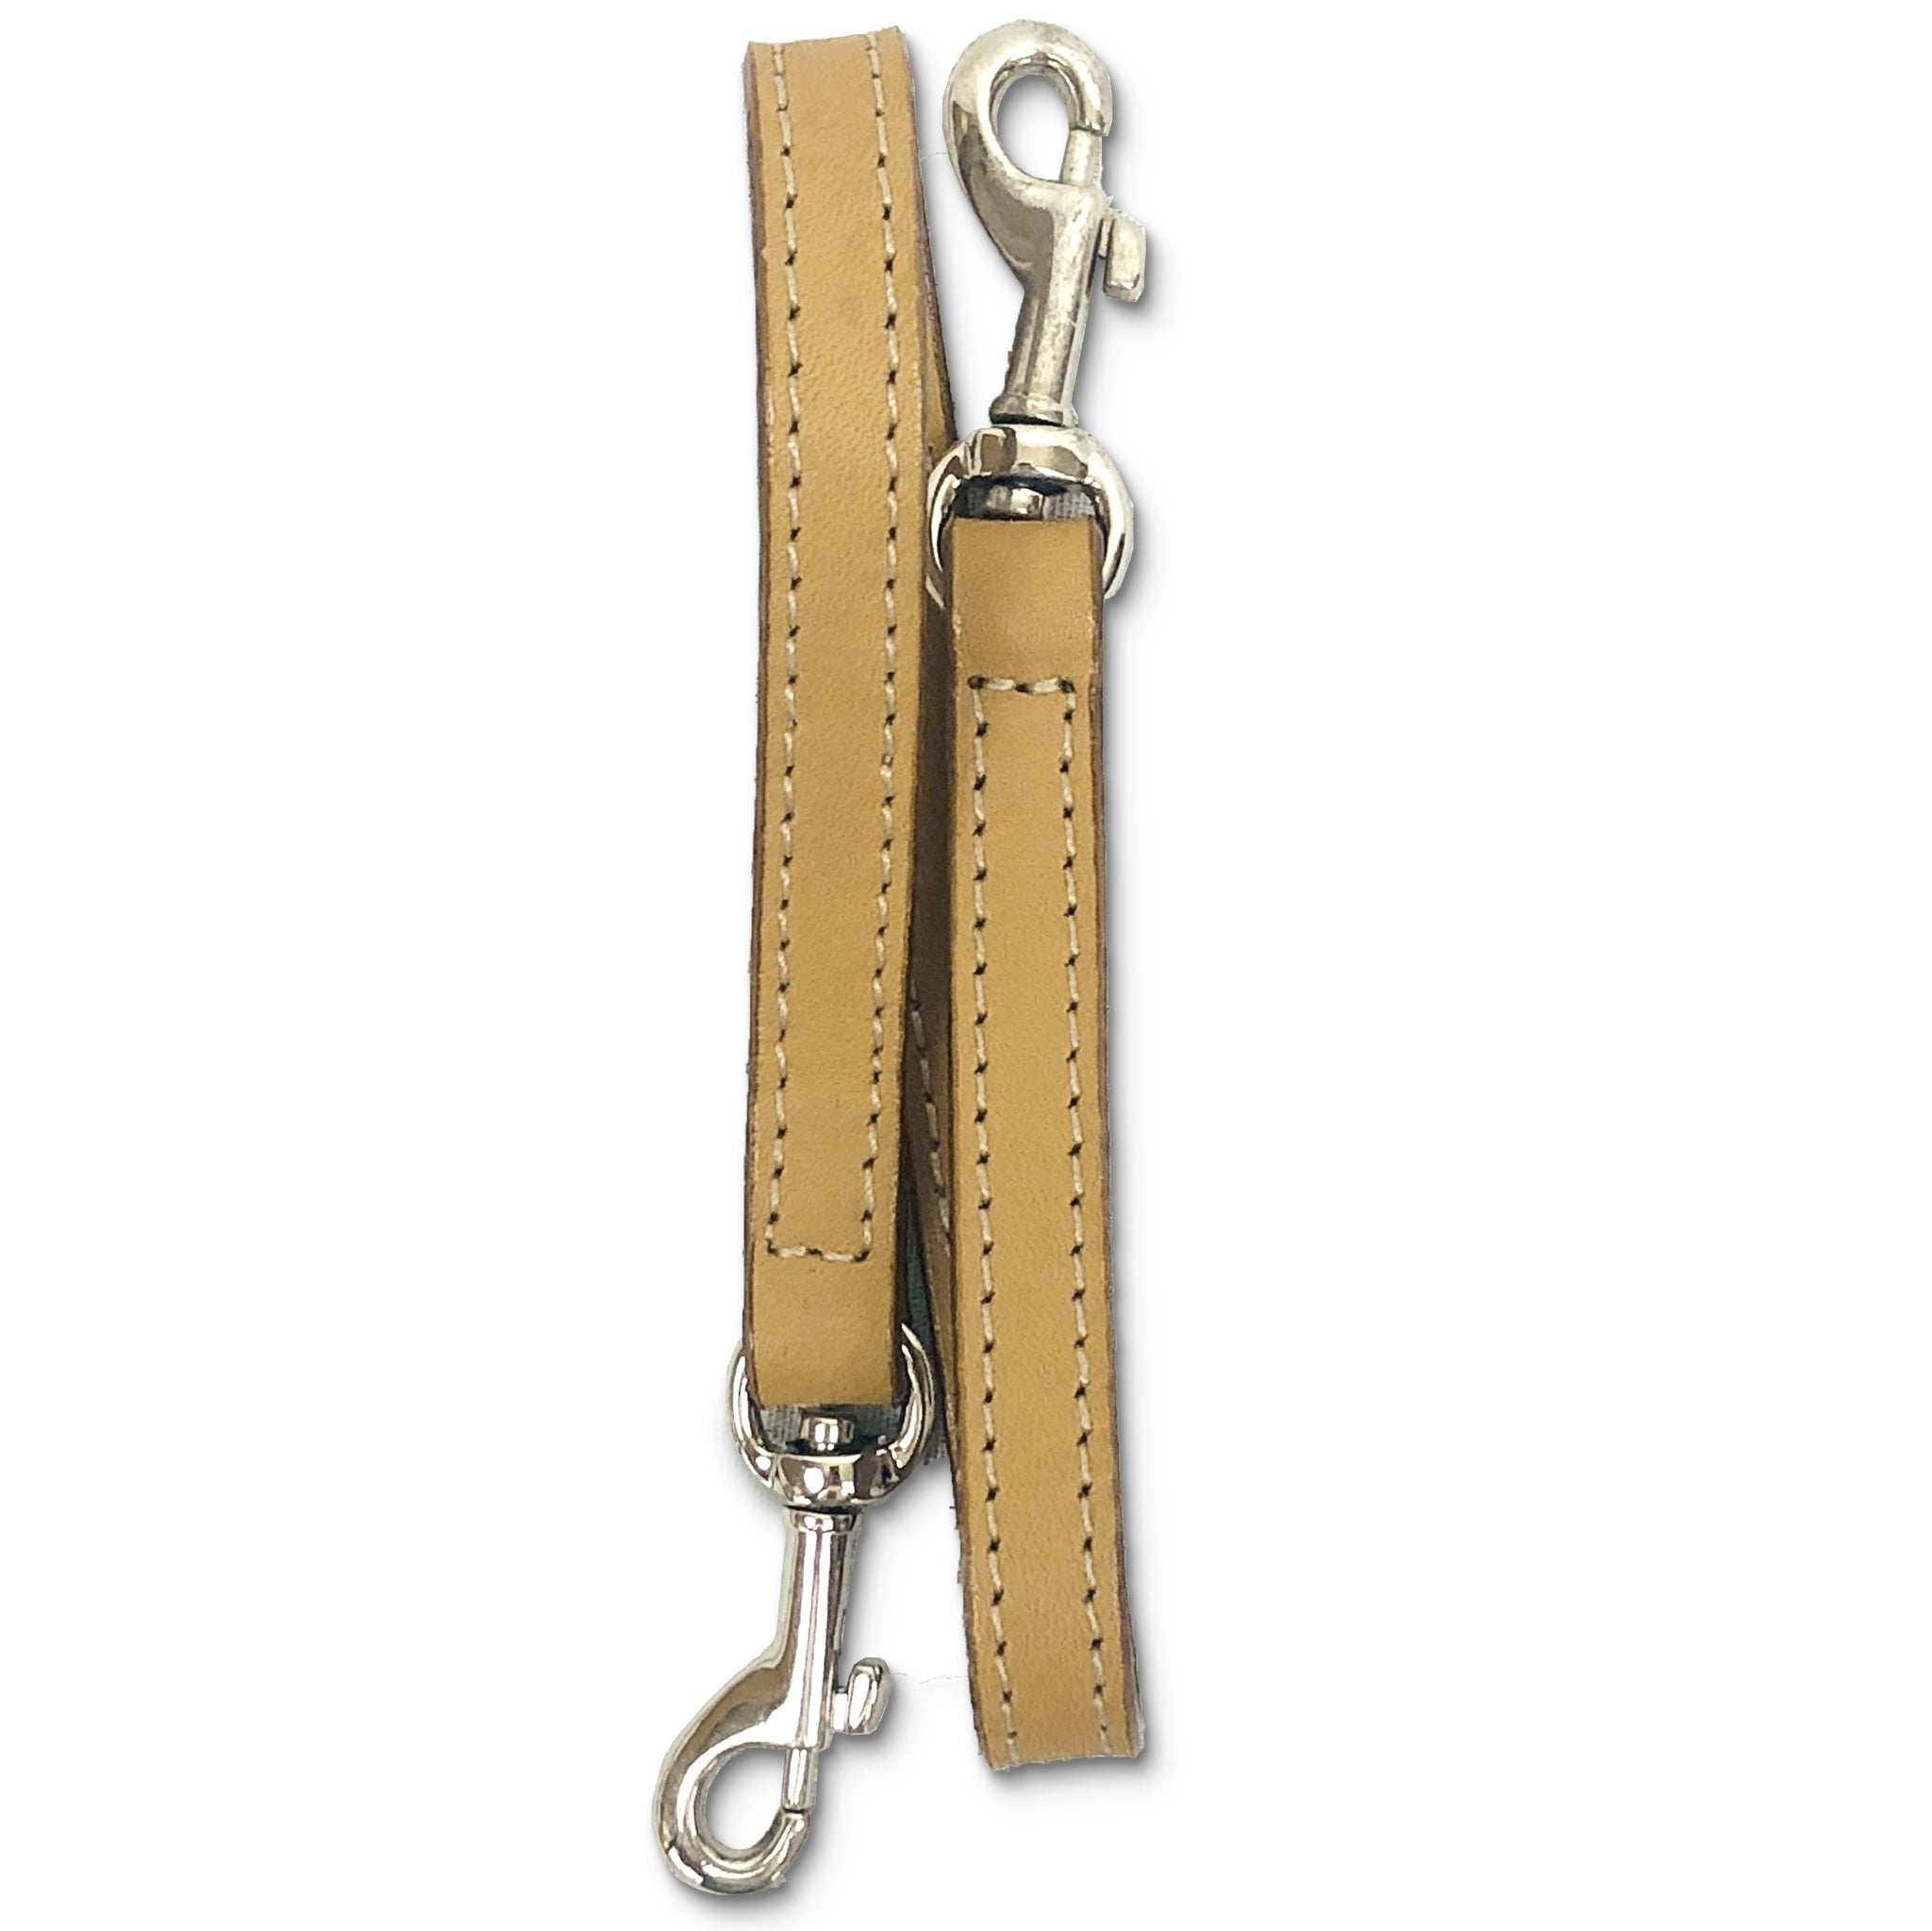 Leather key lanyard in saddle tan folded vertically